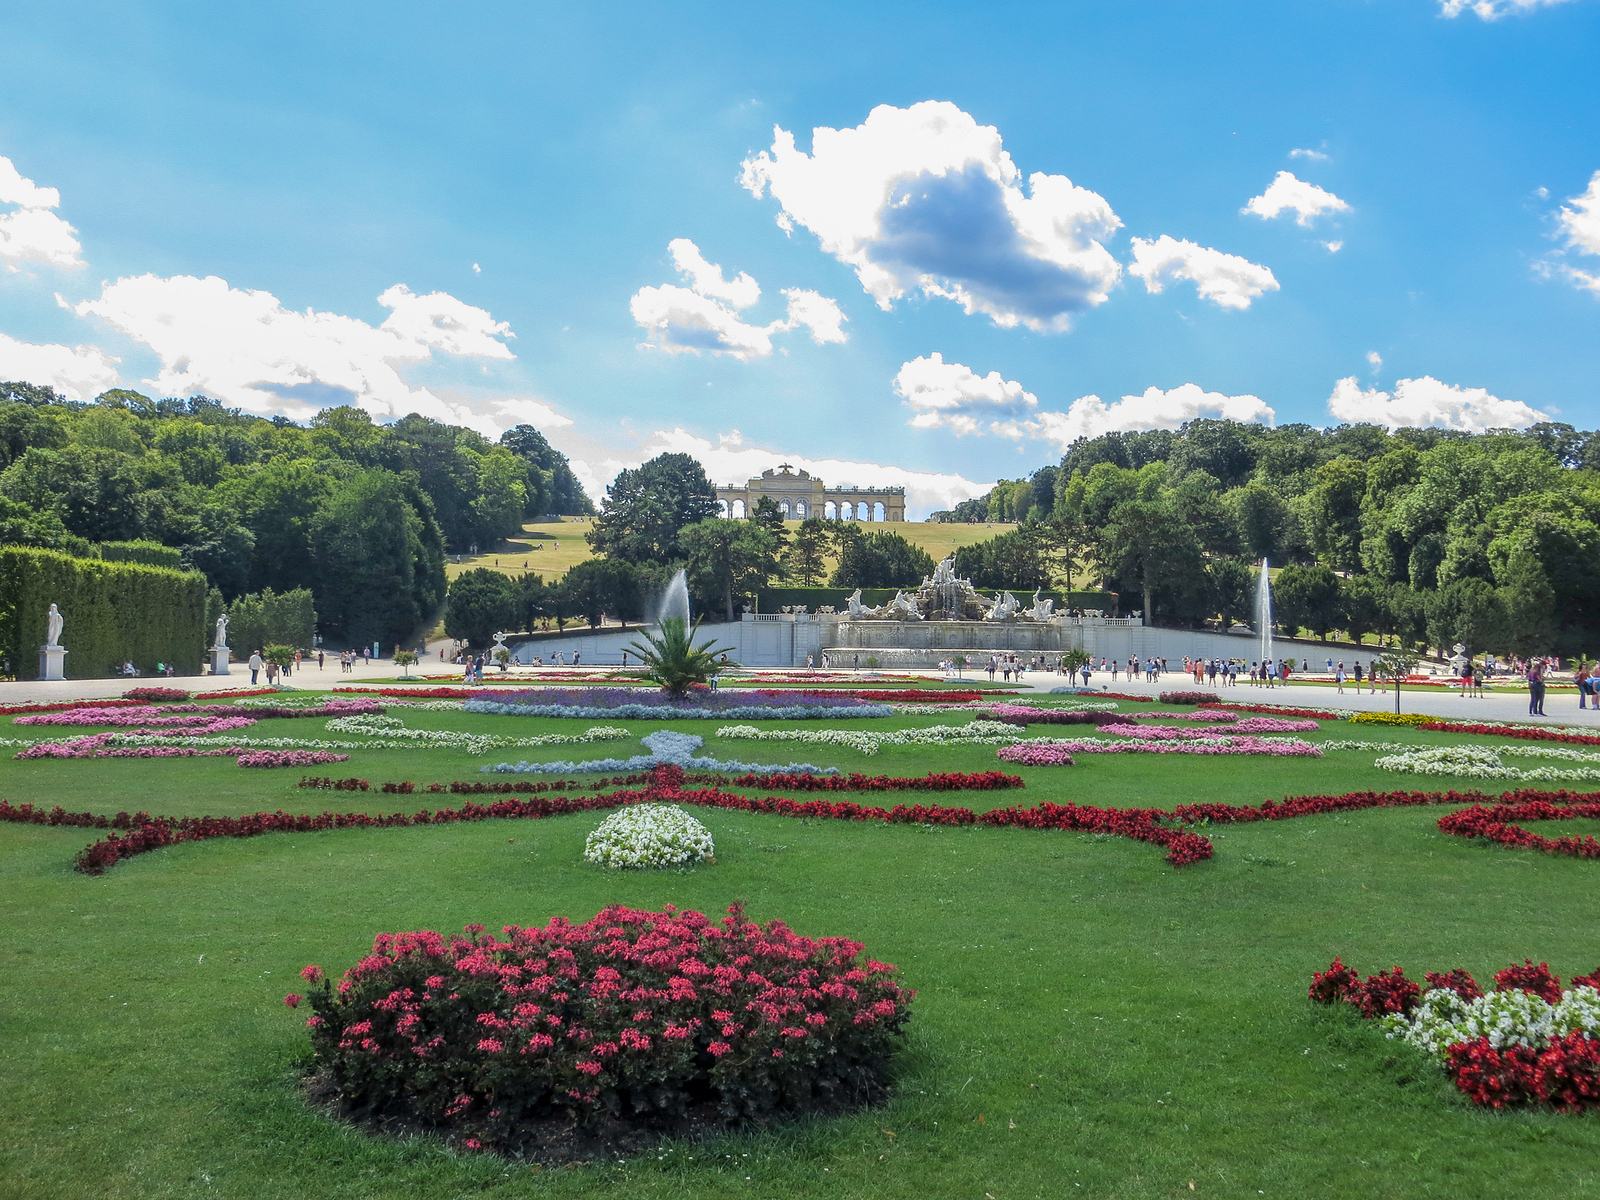 when is the best time to visit vienna? definitely summer.